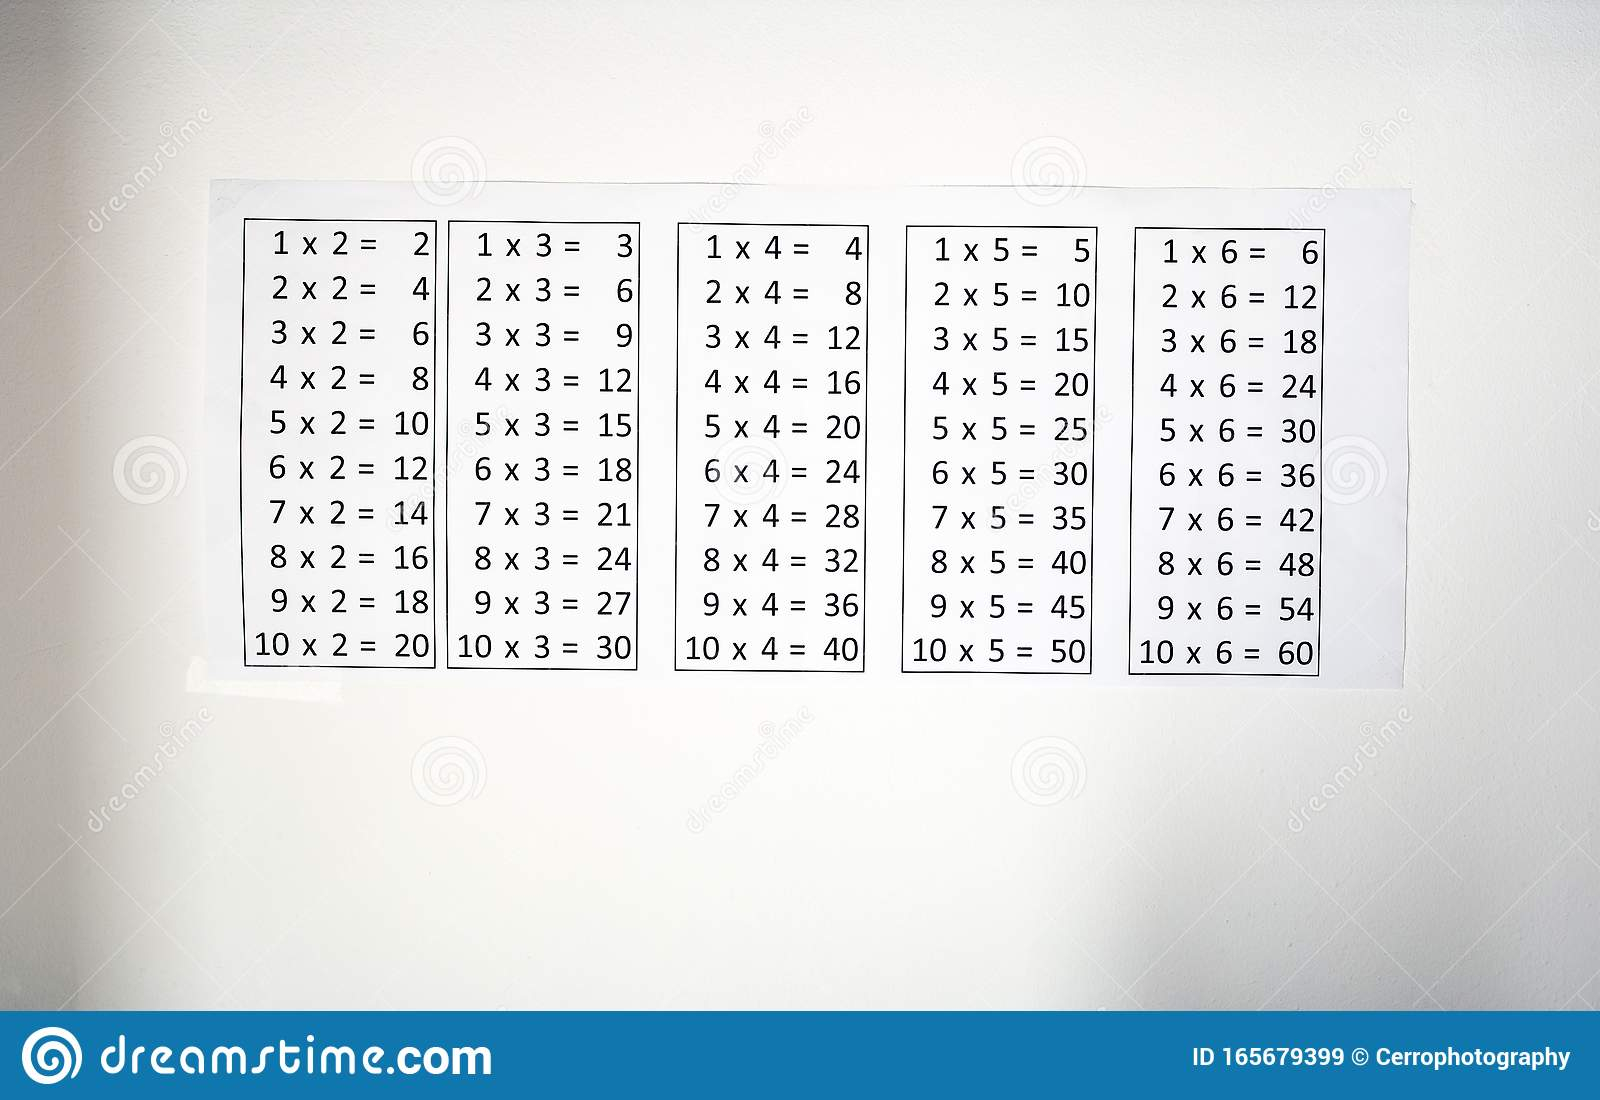 44 Multiplication Tables Photos - Free & Royalty-Free Stock